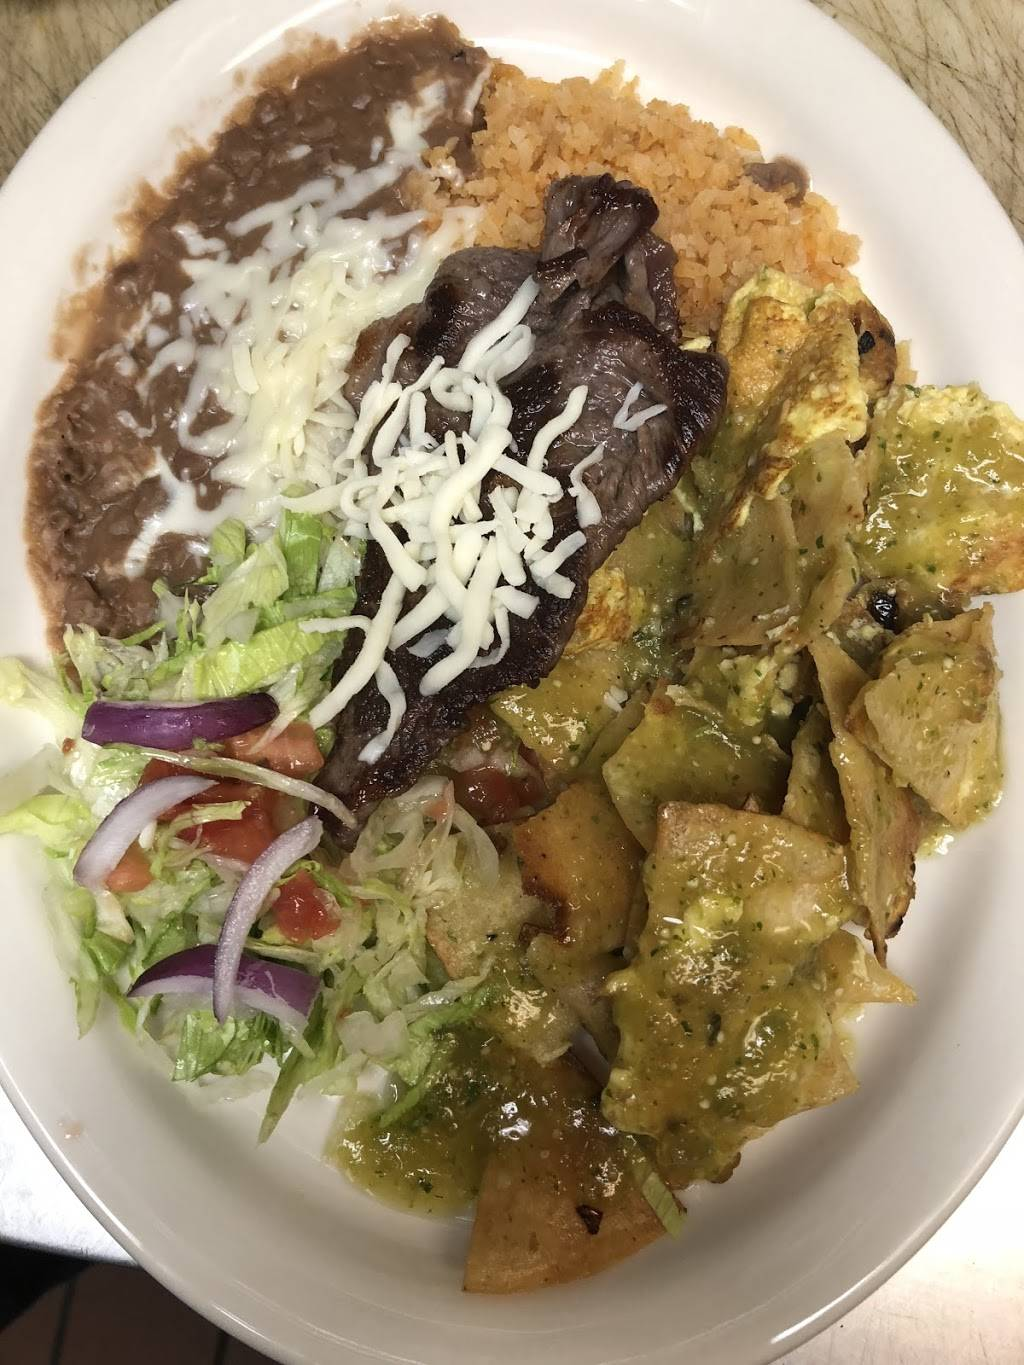 Maderos Mexican restaurant | restaurant | 83 W Joe Orr Rd, Chicago Heights, IL 60411, USA | 7089802982 OR +1 708-980-2982